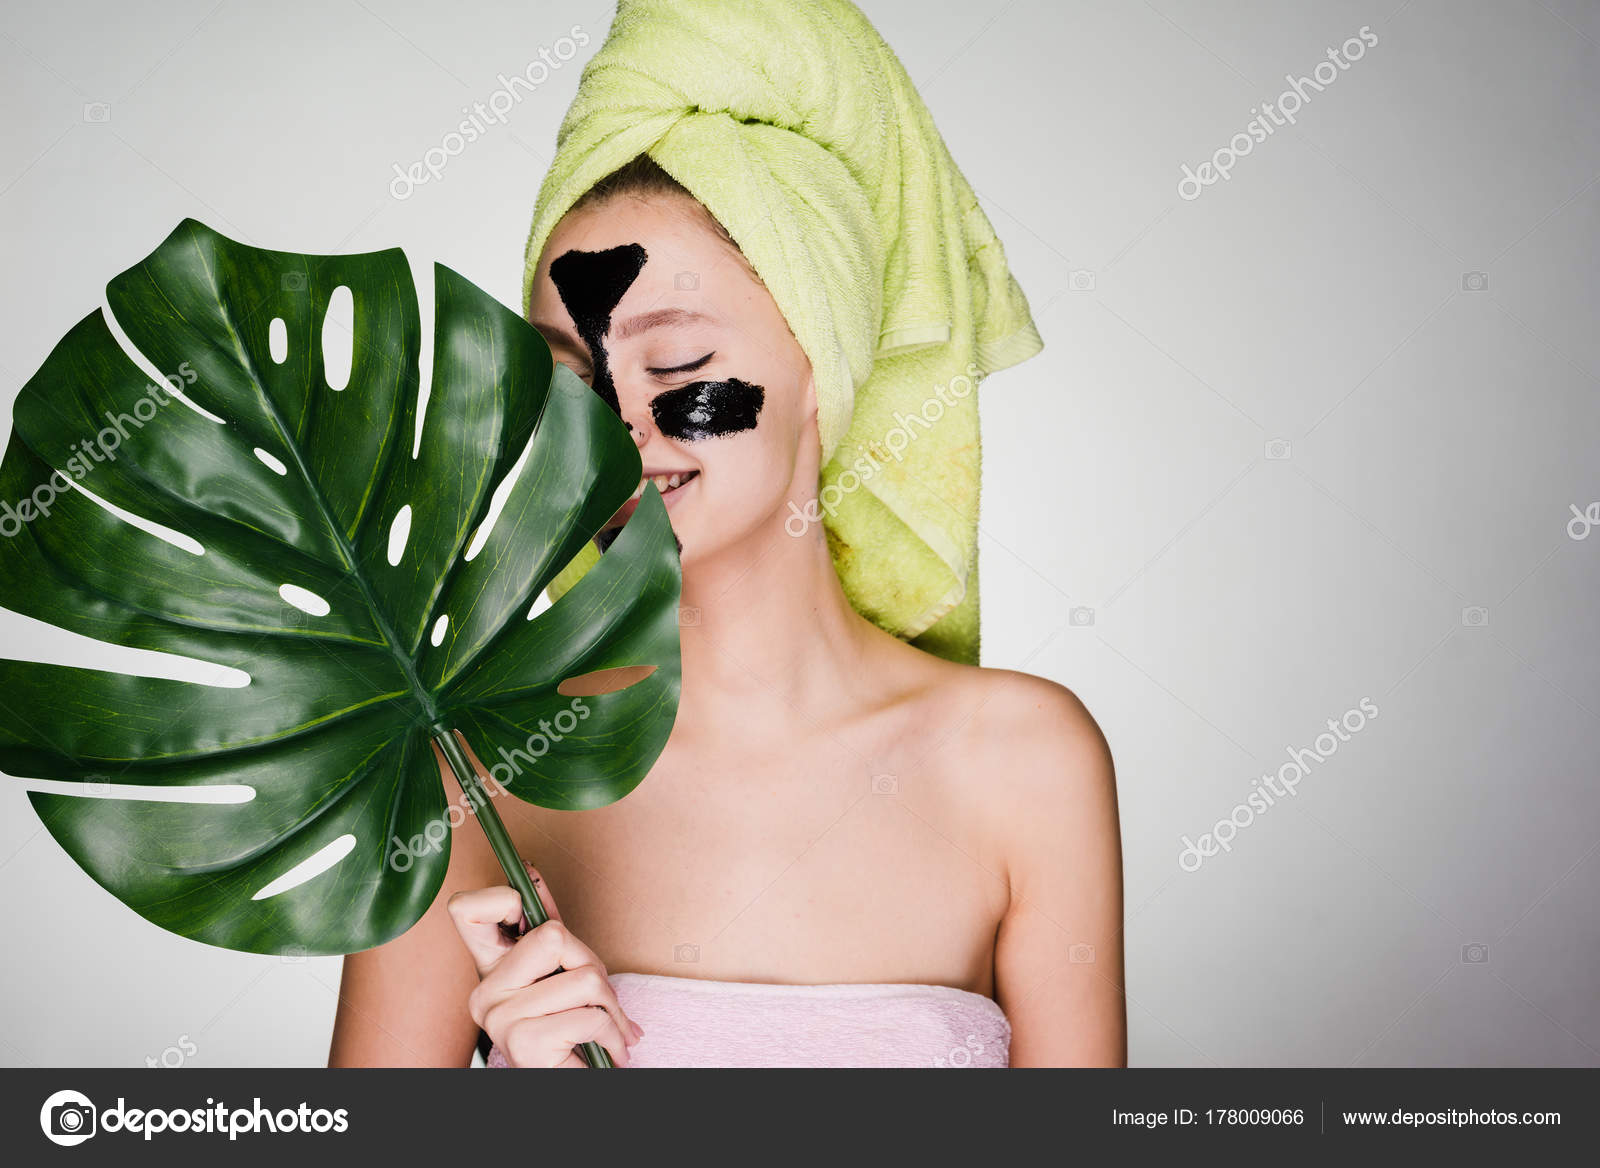 7c7de4cebc6 An attractive young girl with a green towel on her head covers her face  with a green leaf